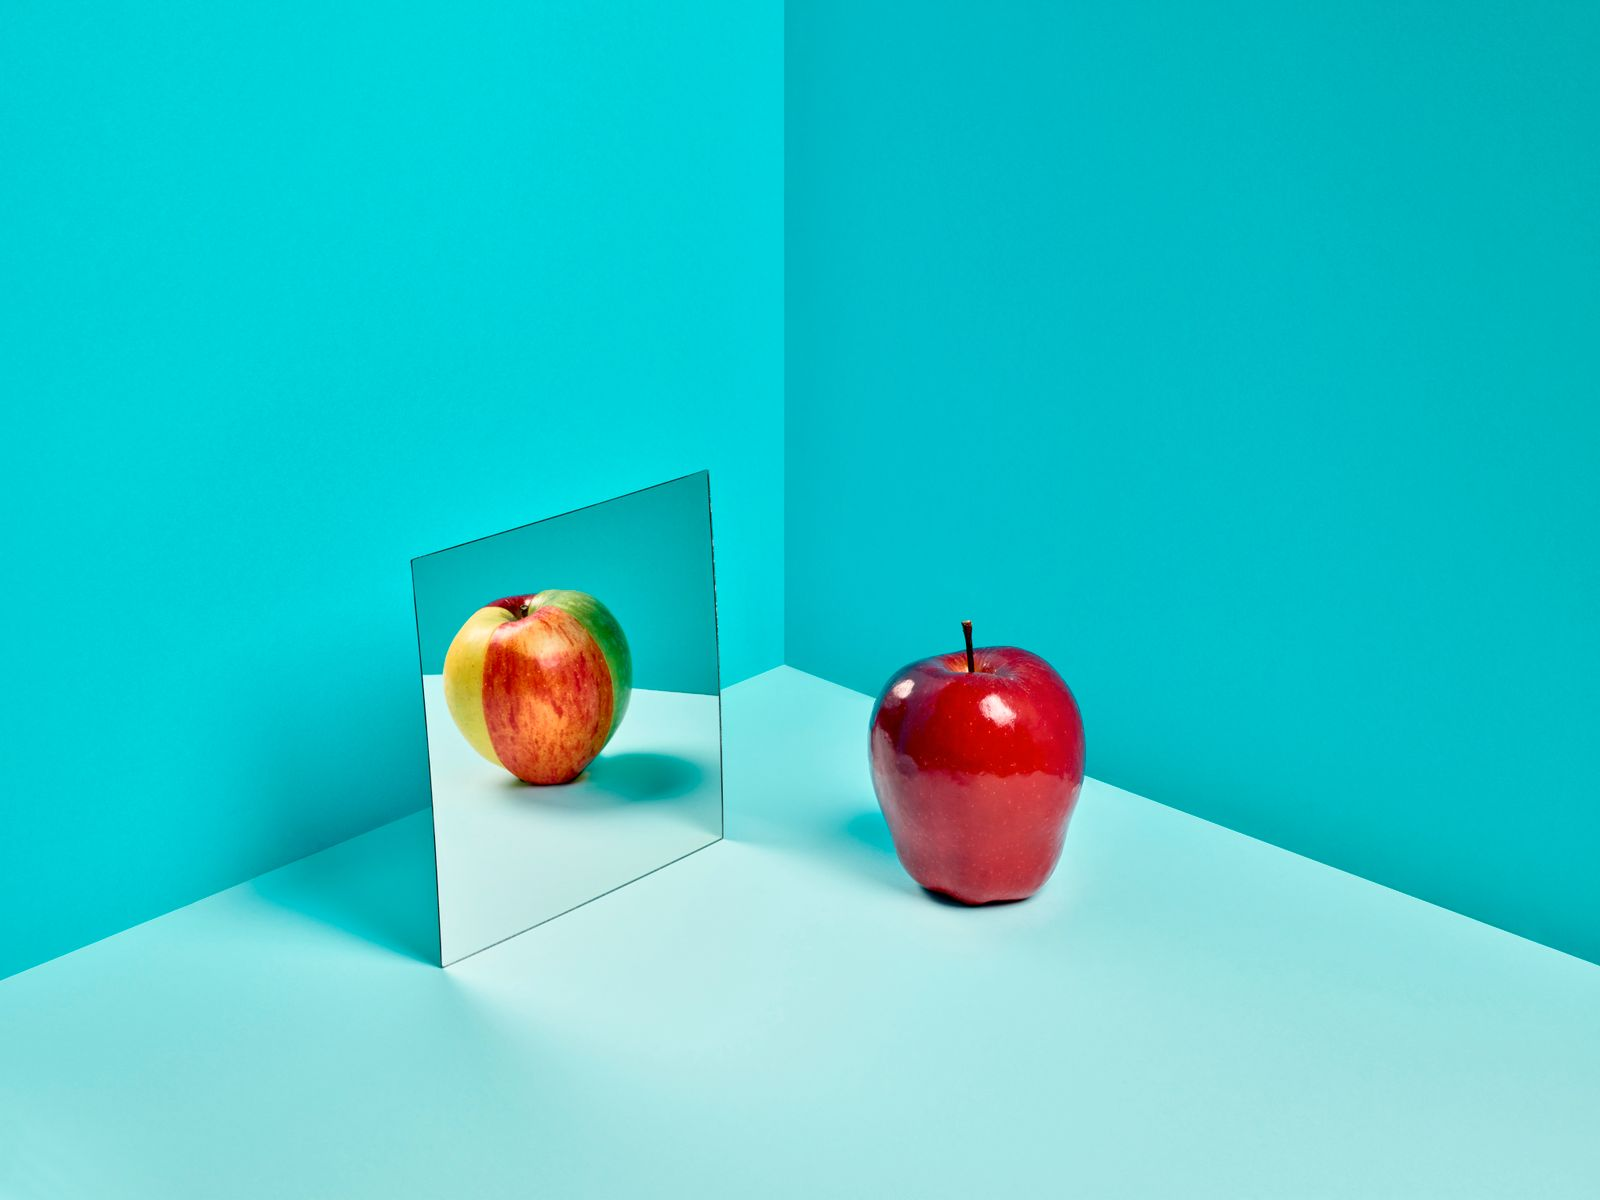 A Red Delicious apple in a mirror reflecting a mixed color apple made of slices of different varieties.